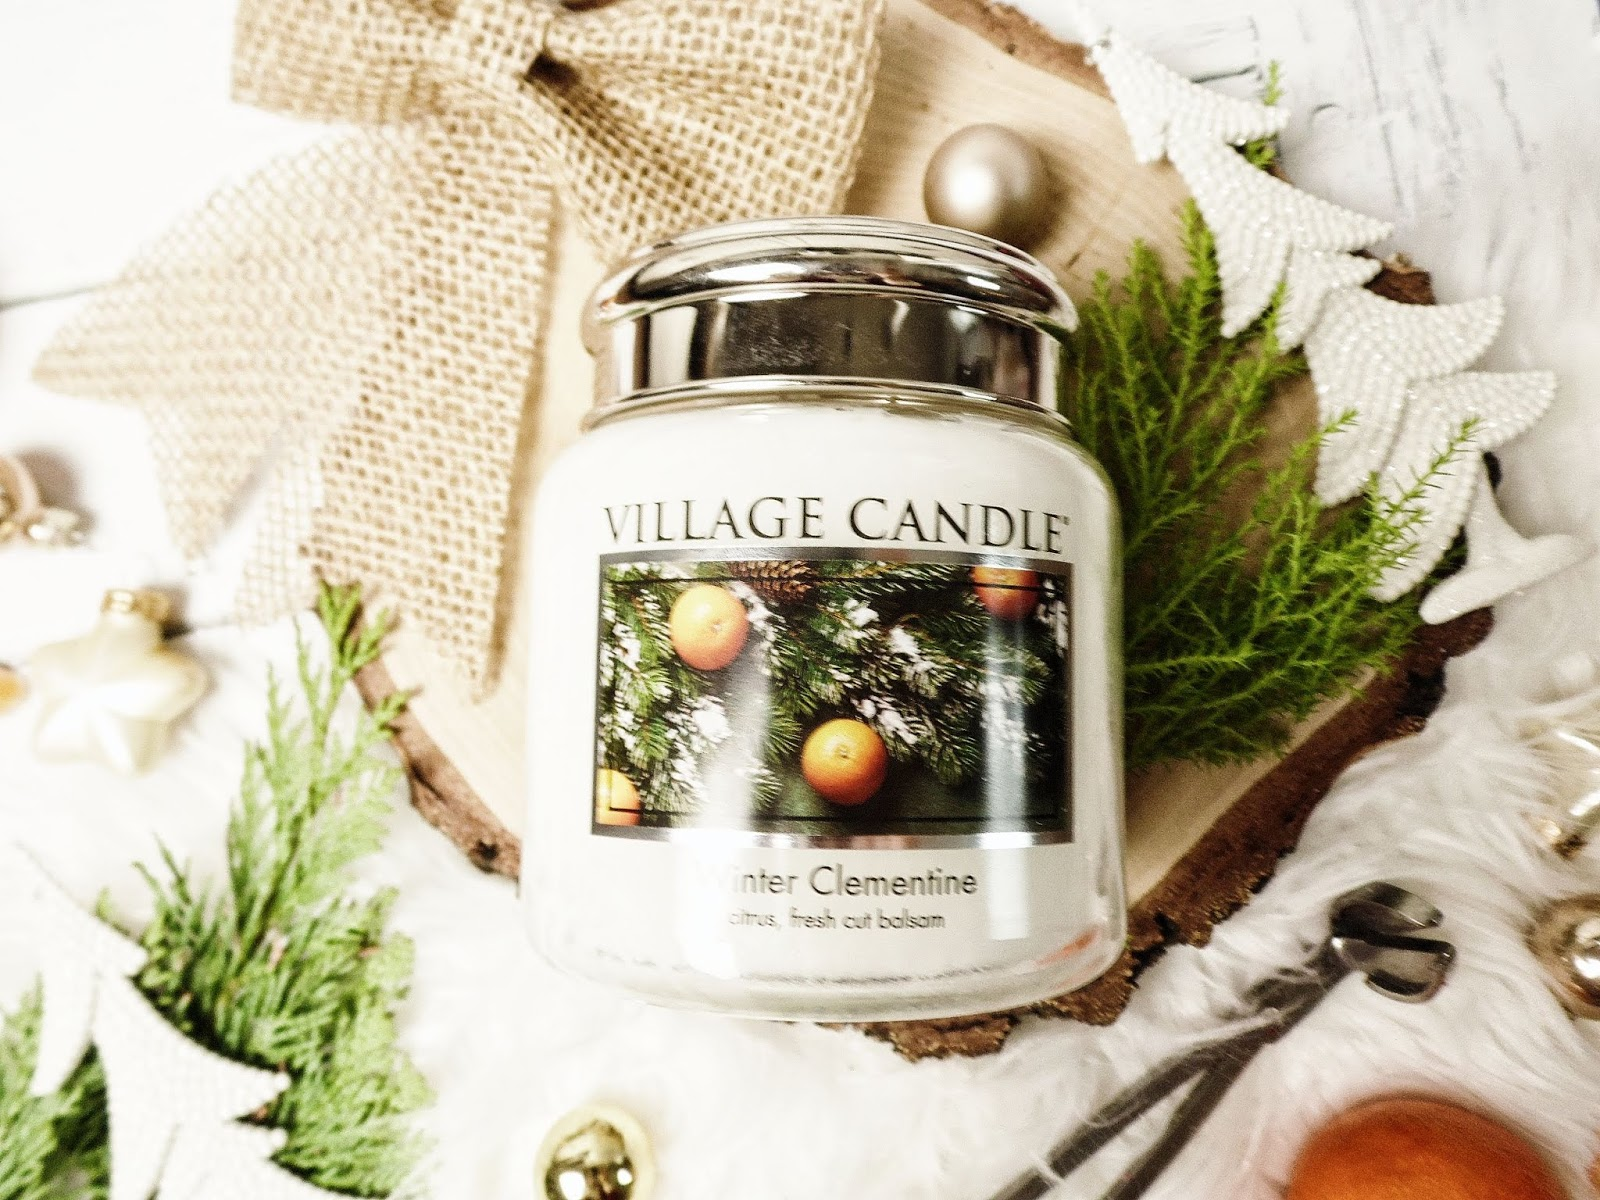 winter clementine village candle zapachy zimowe